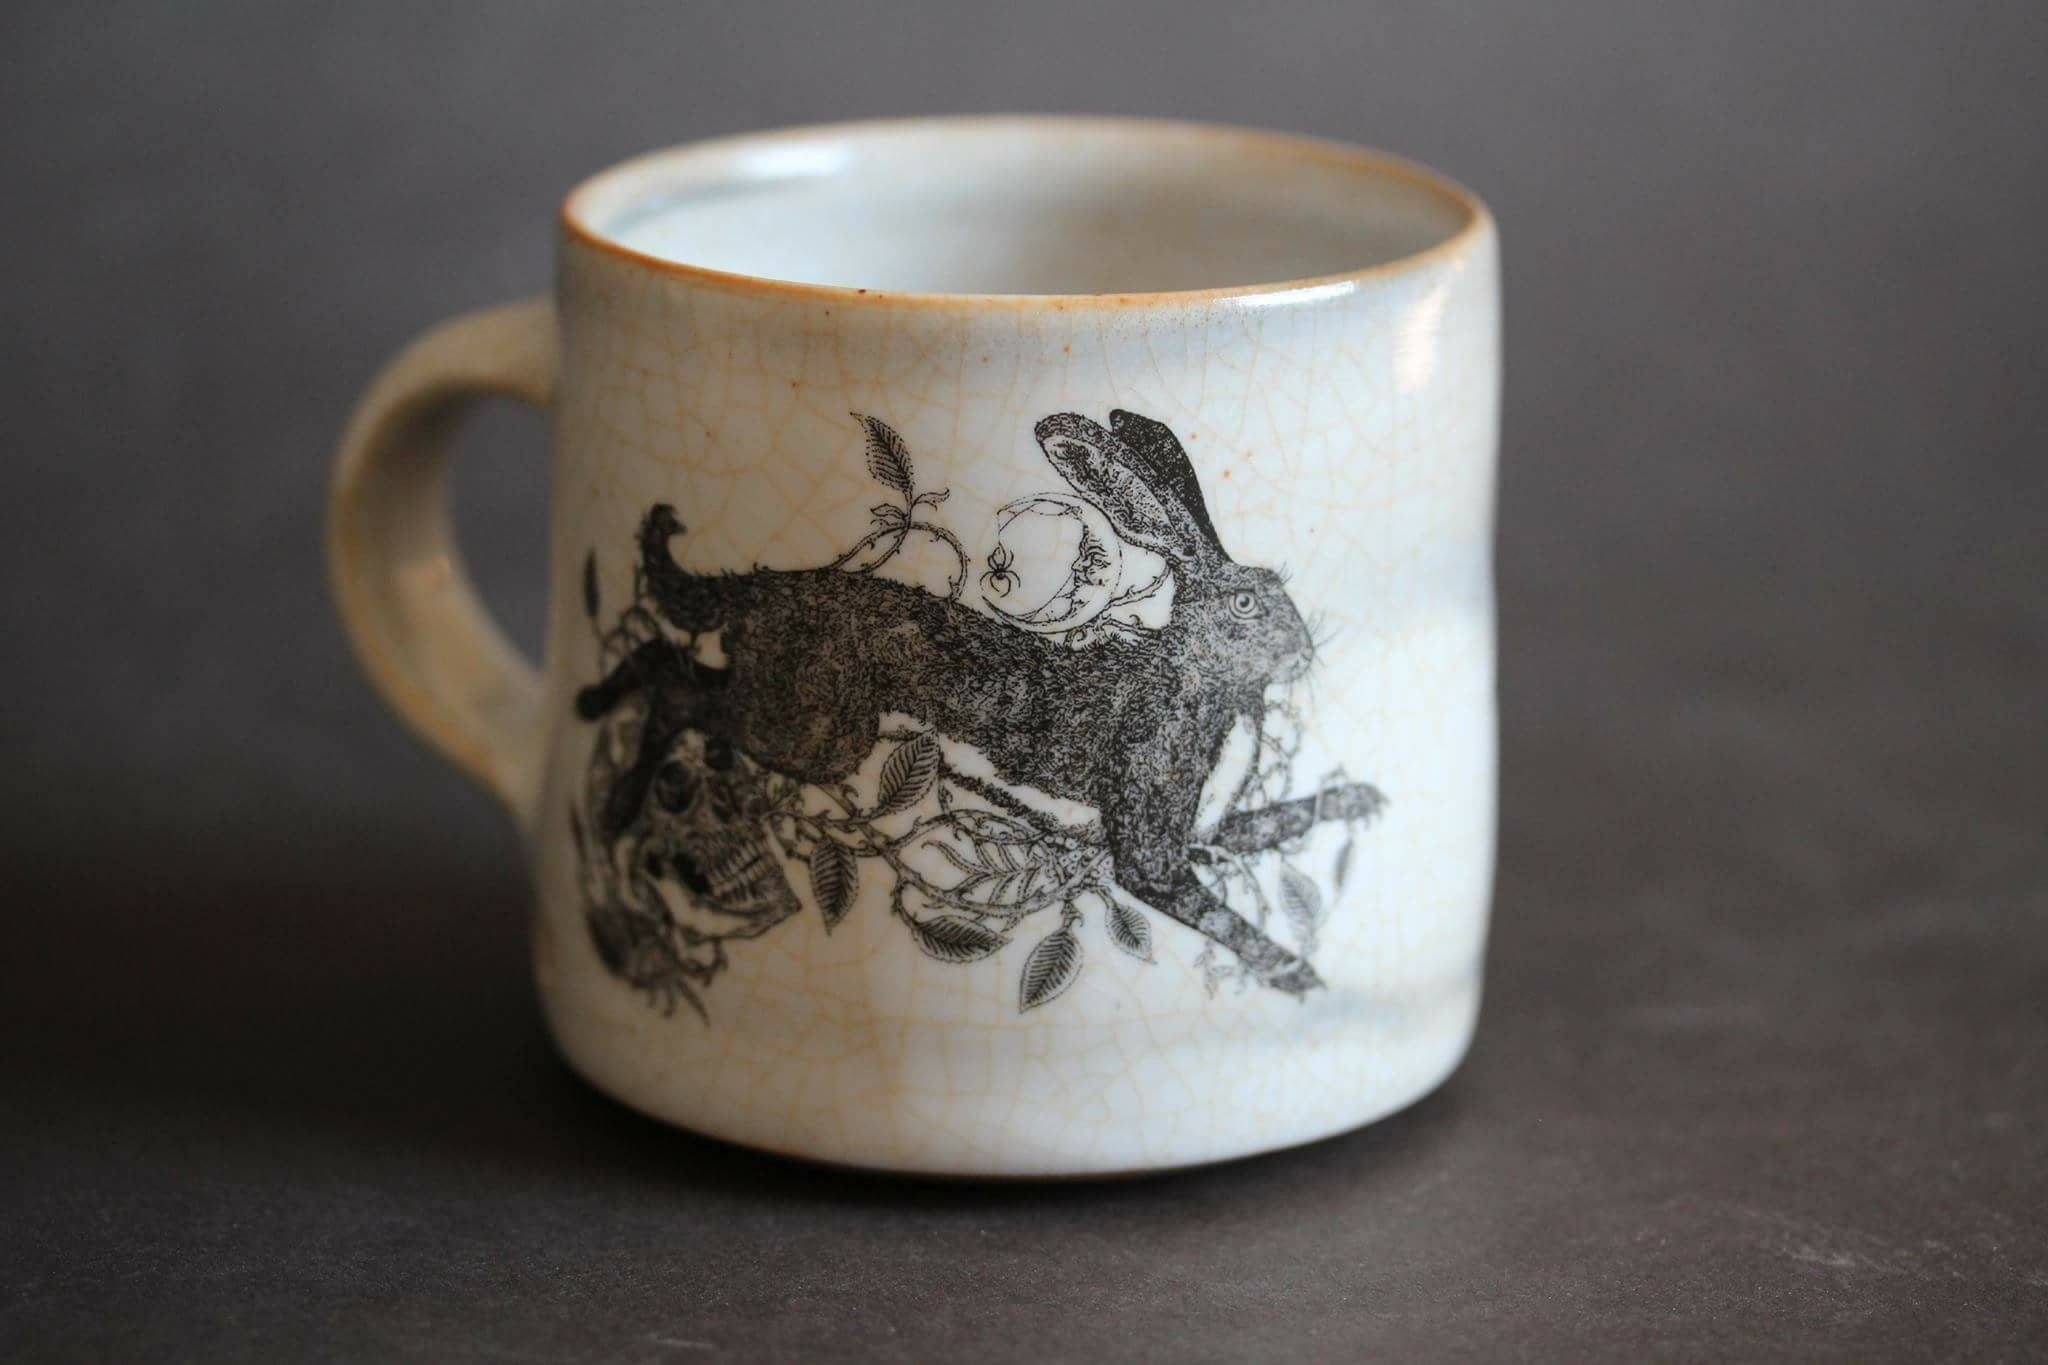 Brambles Rowan And The Hare Ceramic Mug Sin Eater